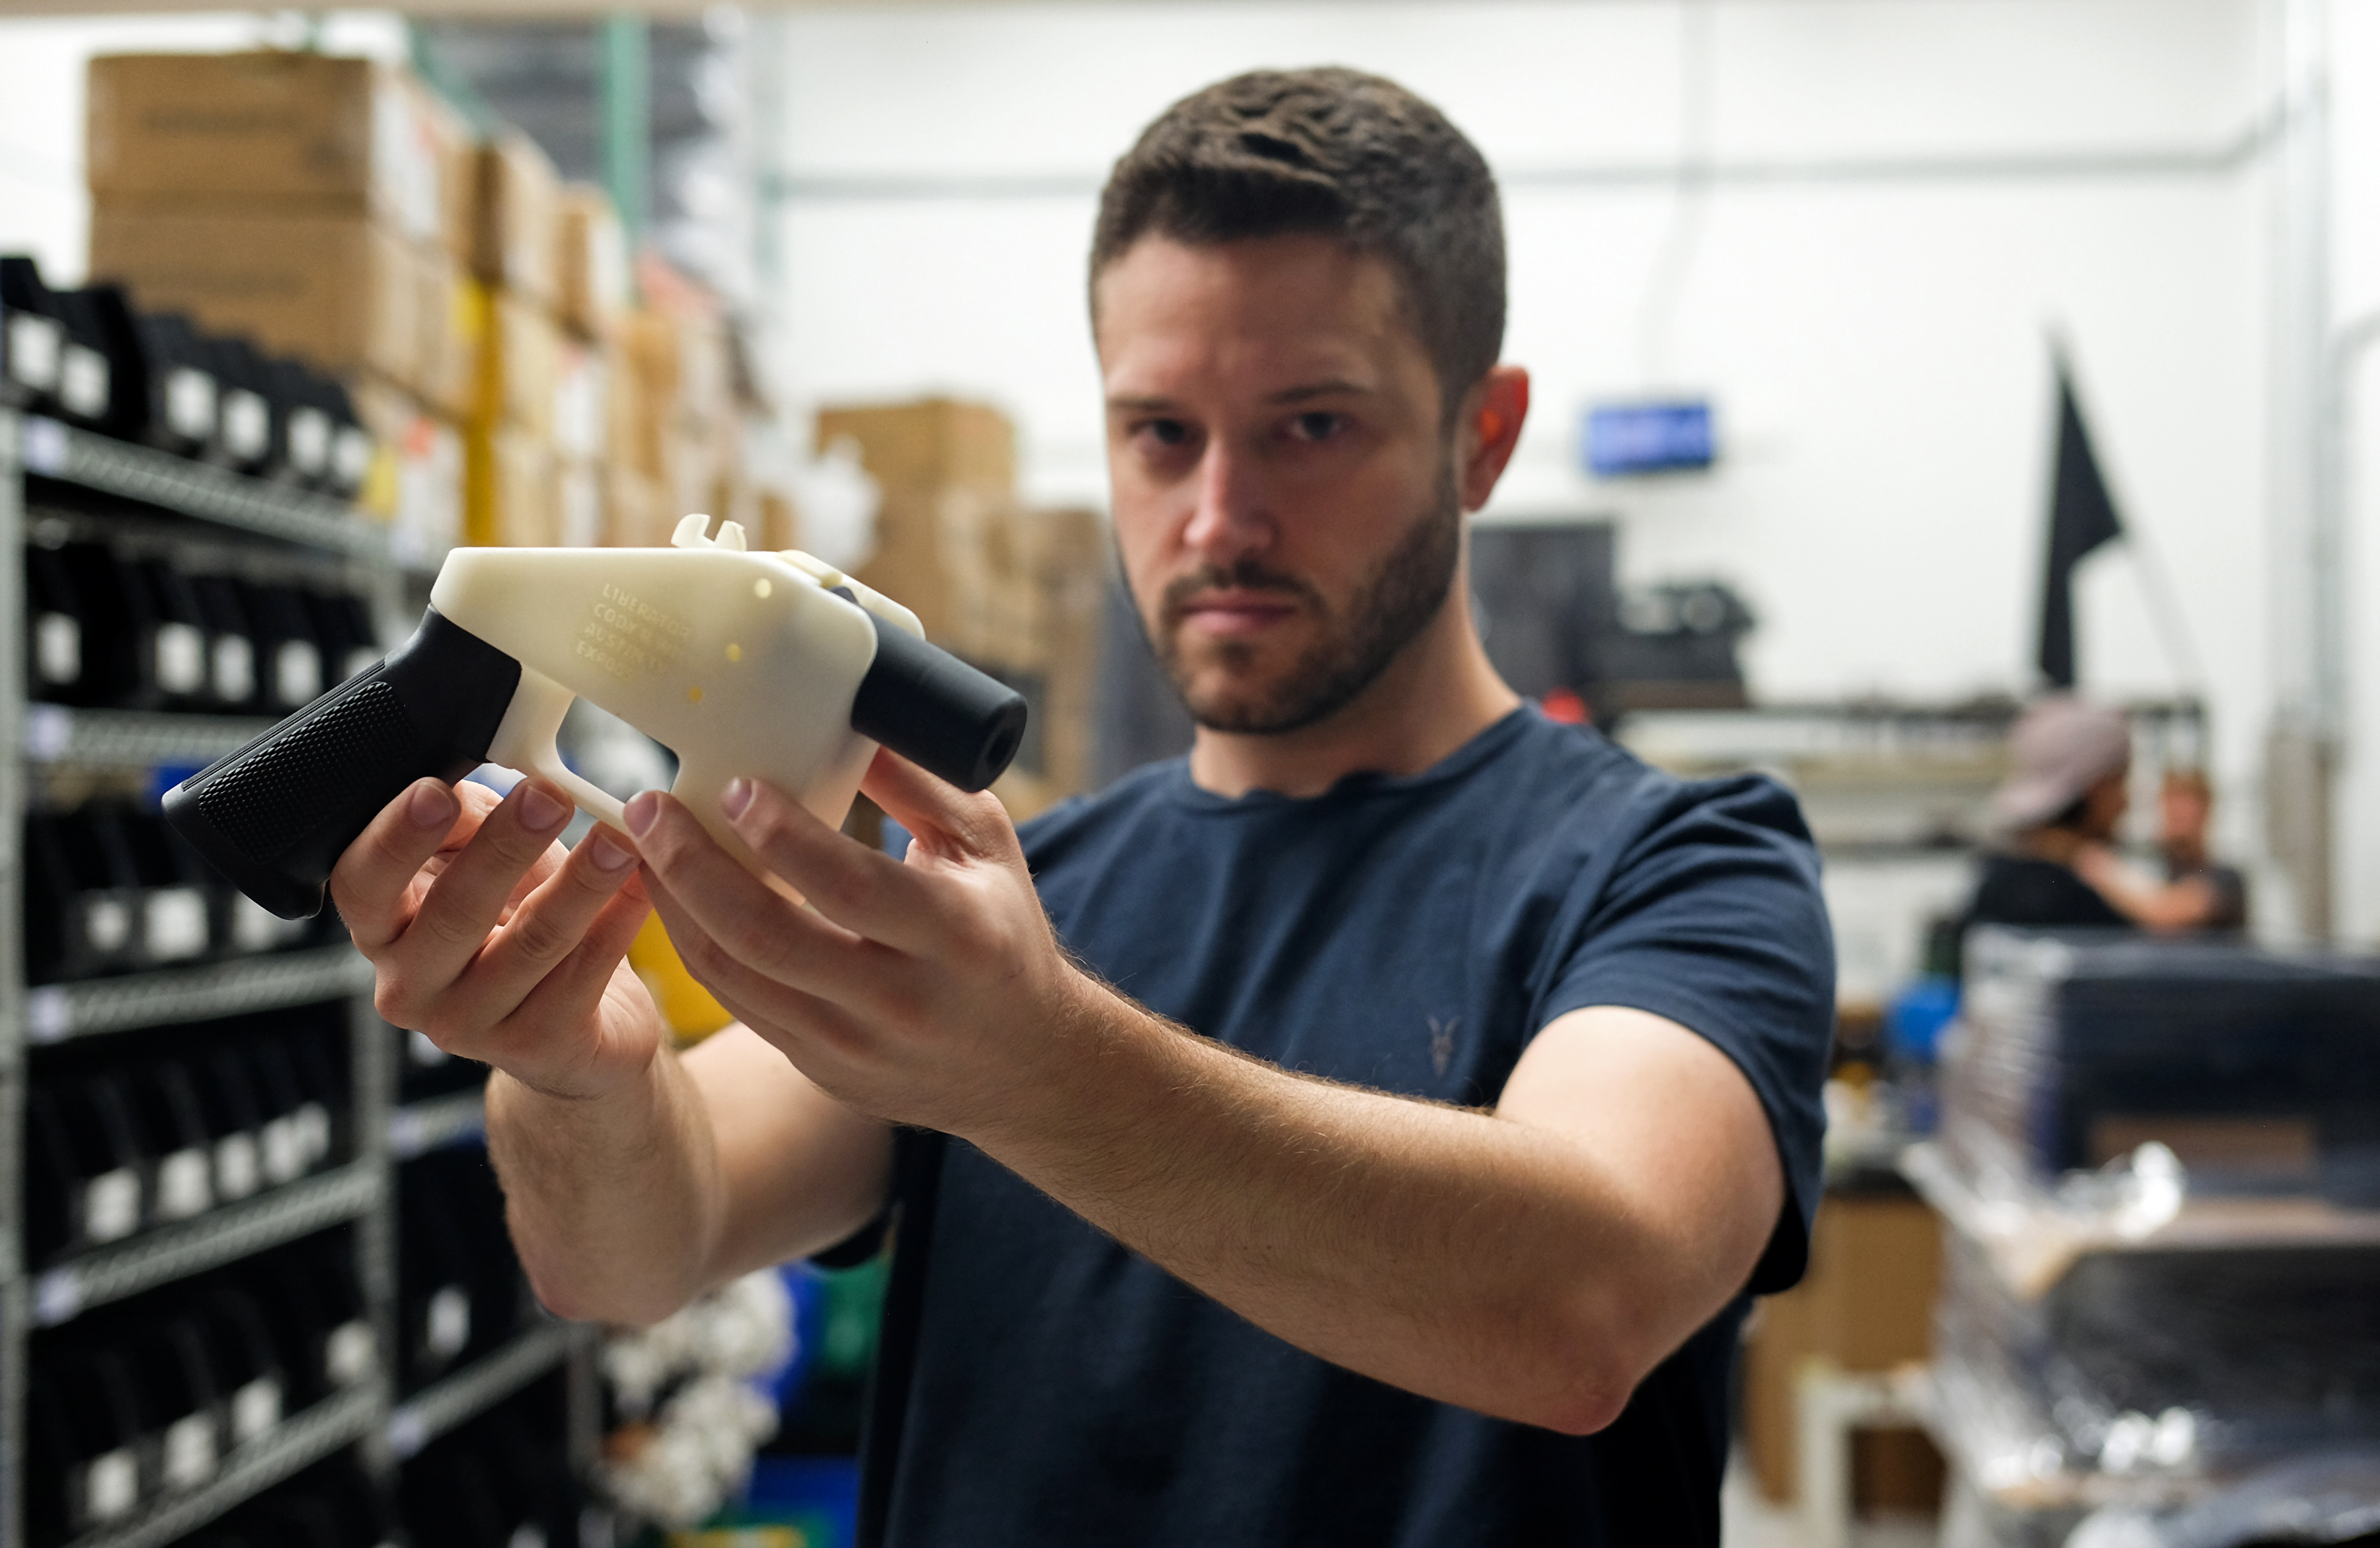 enlarge cody wilson owner of defense distributed company holds a 3d printed gun called the liberator in his factory in austin texas on august 1